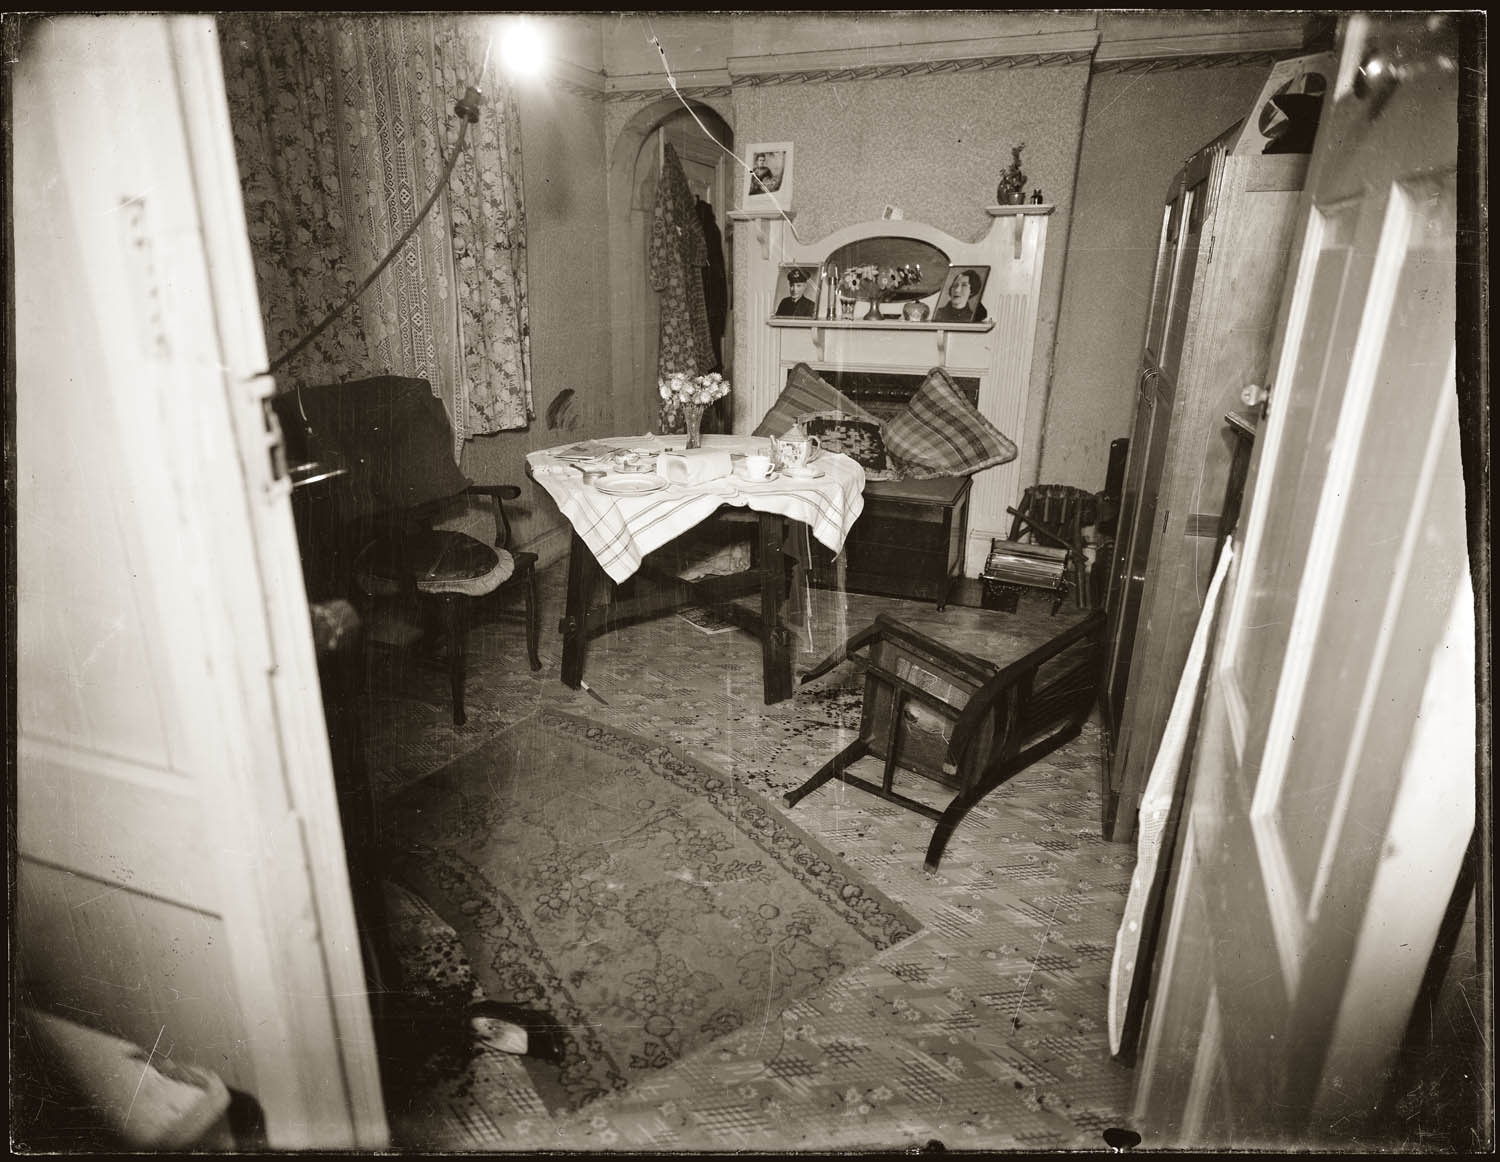 10 Moving Crime Scene Photos From The 1940s We Heart